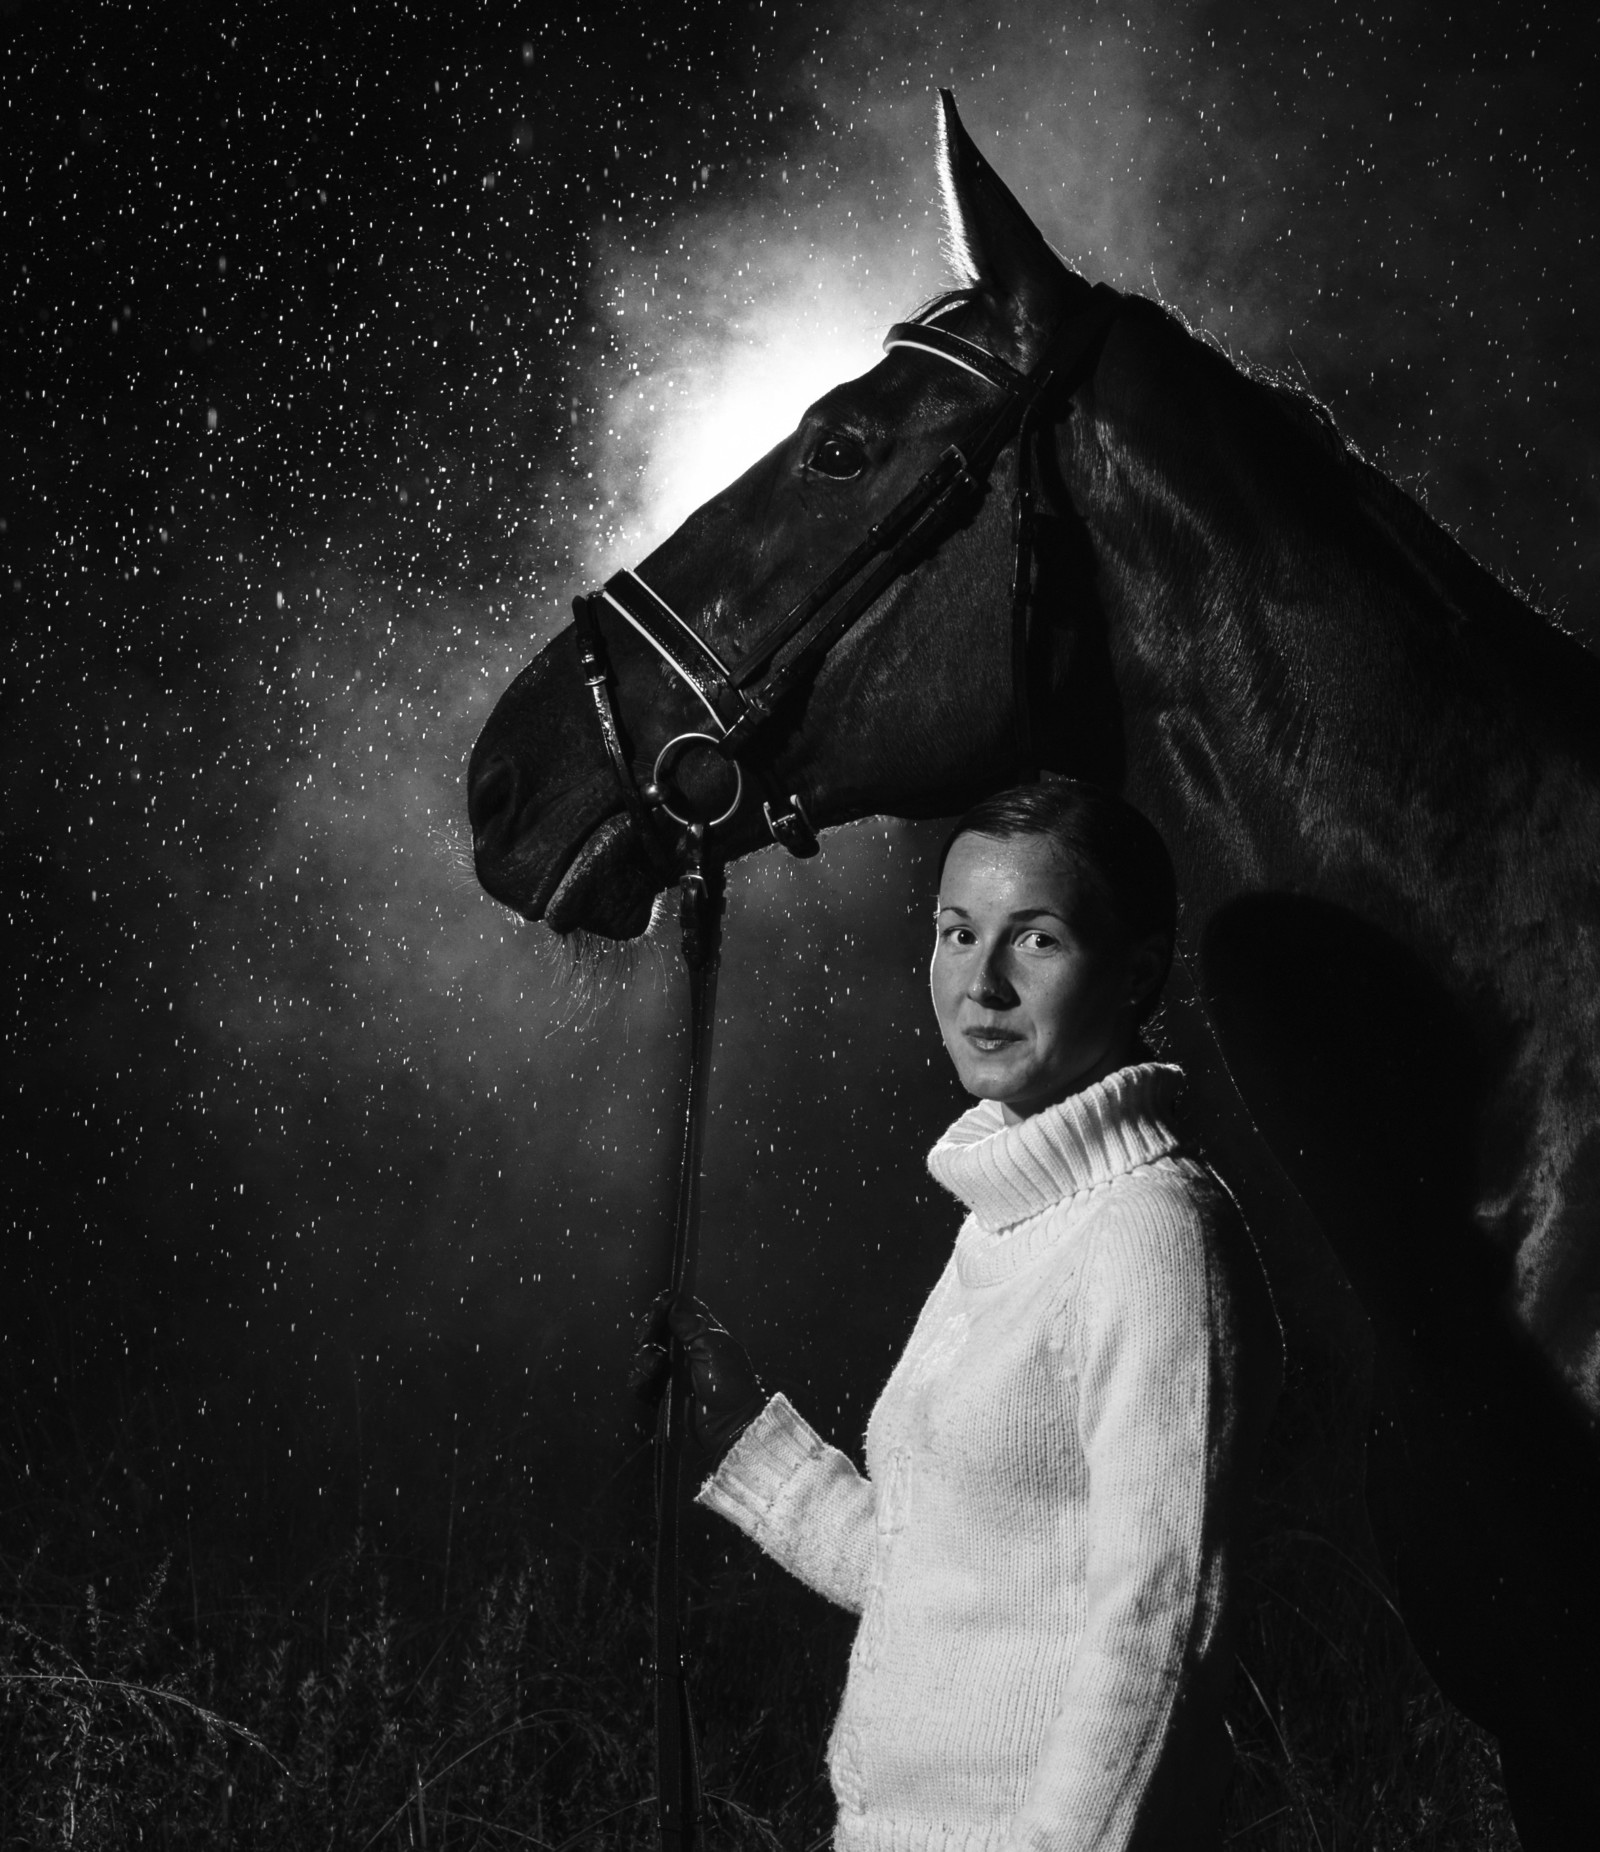 15262477 - smiling woman and horse together in the rain, vertical format